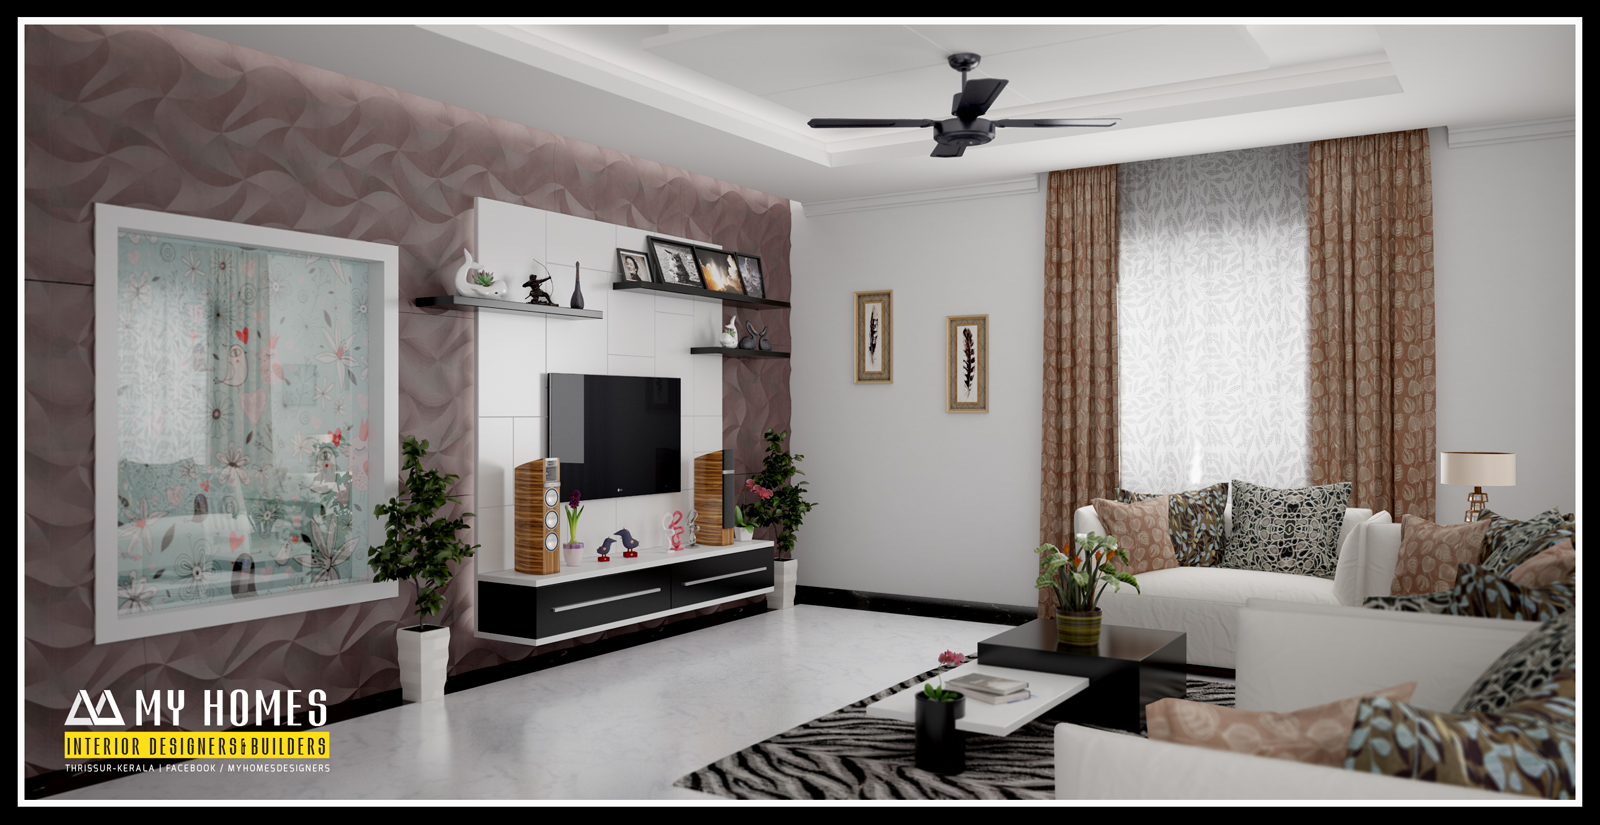 Kerala interior design ideas from designing company thrissur - Home interiors living room ...